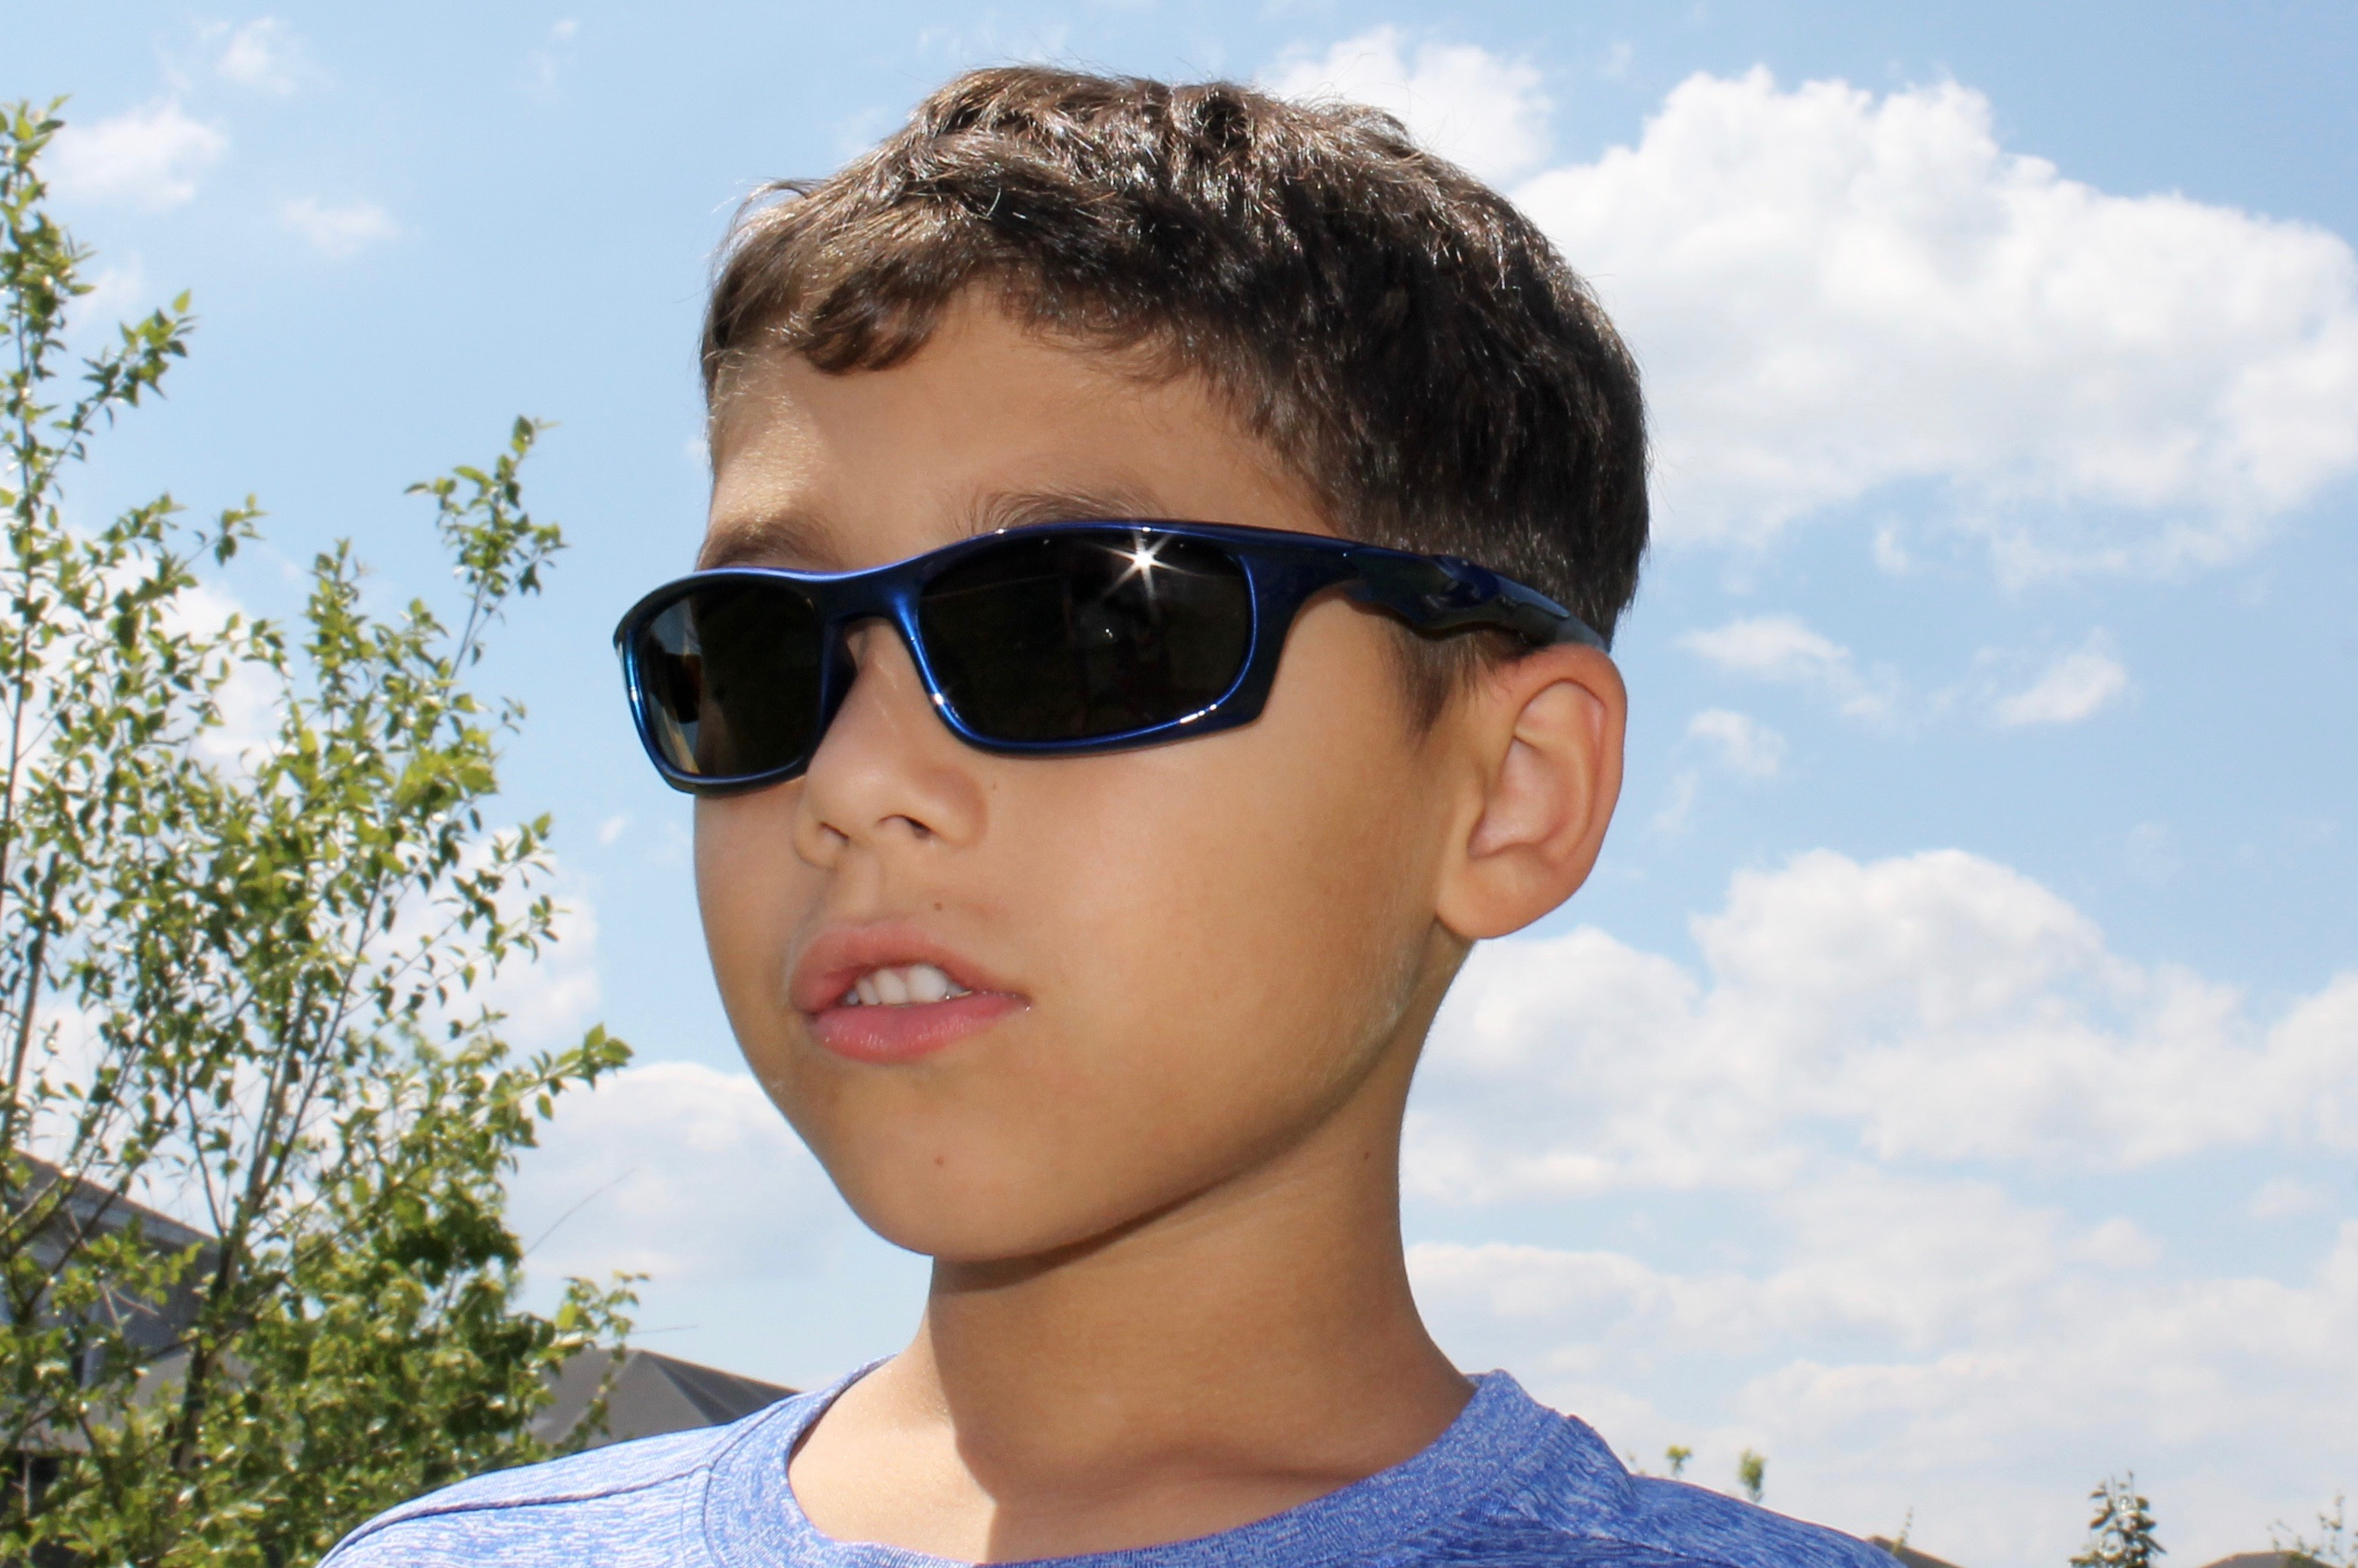 37a19fa7ce8 The thoughtfulness and ingenuity behind Real Shades makes for a perfect  lens for rugged and active kids.